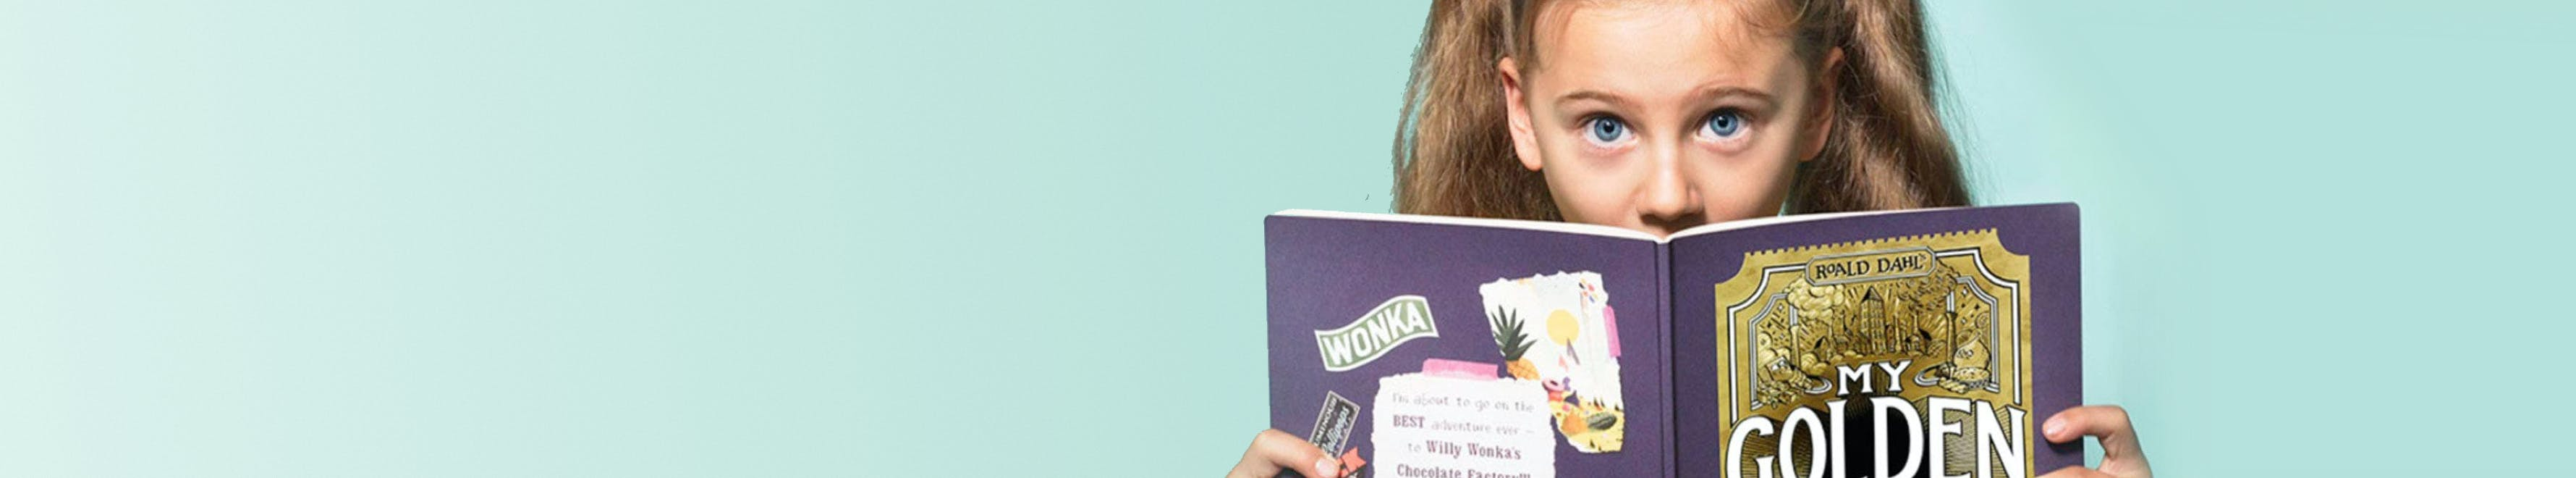 Young girl in awe, reading My Golden Ticket